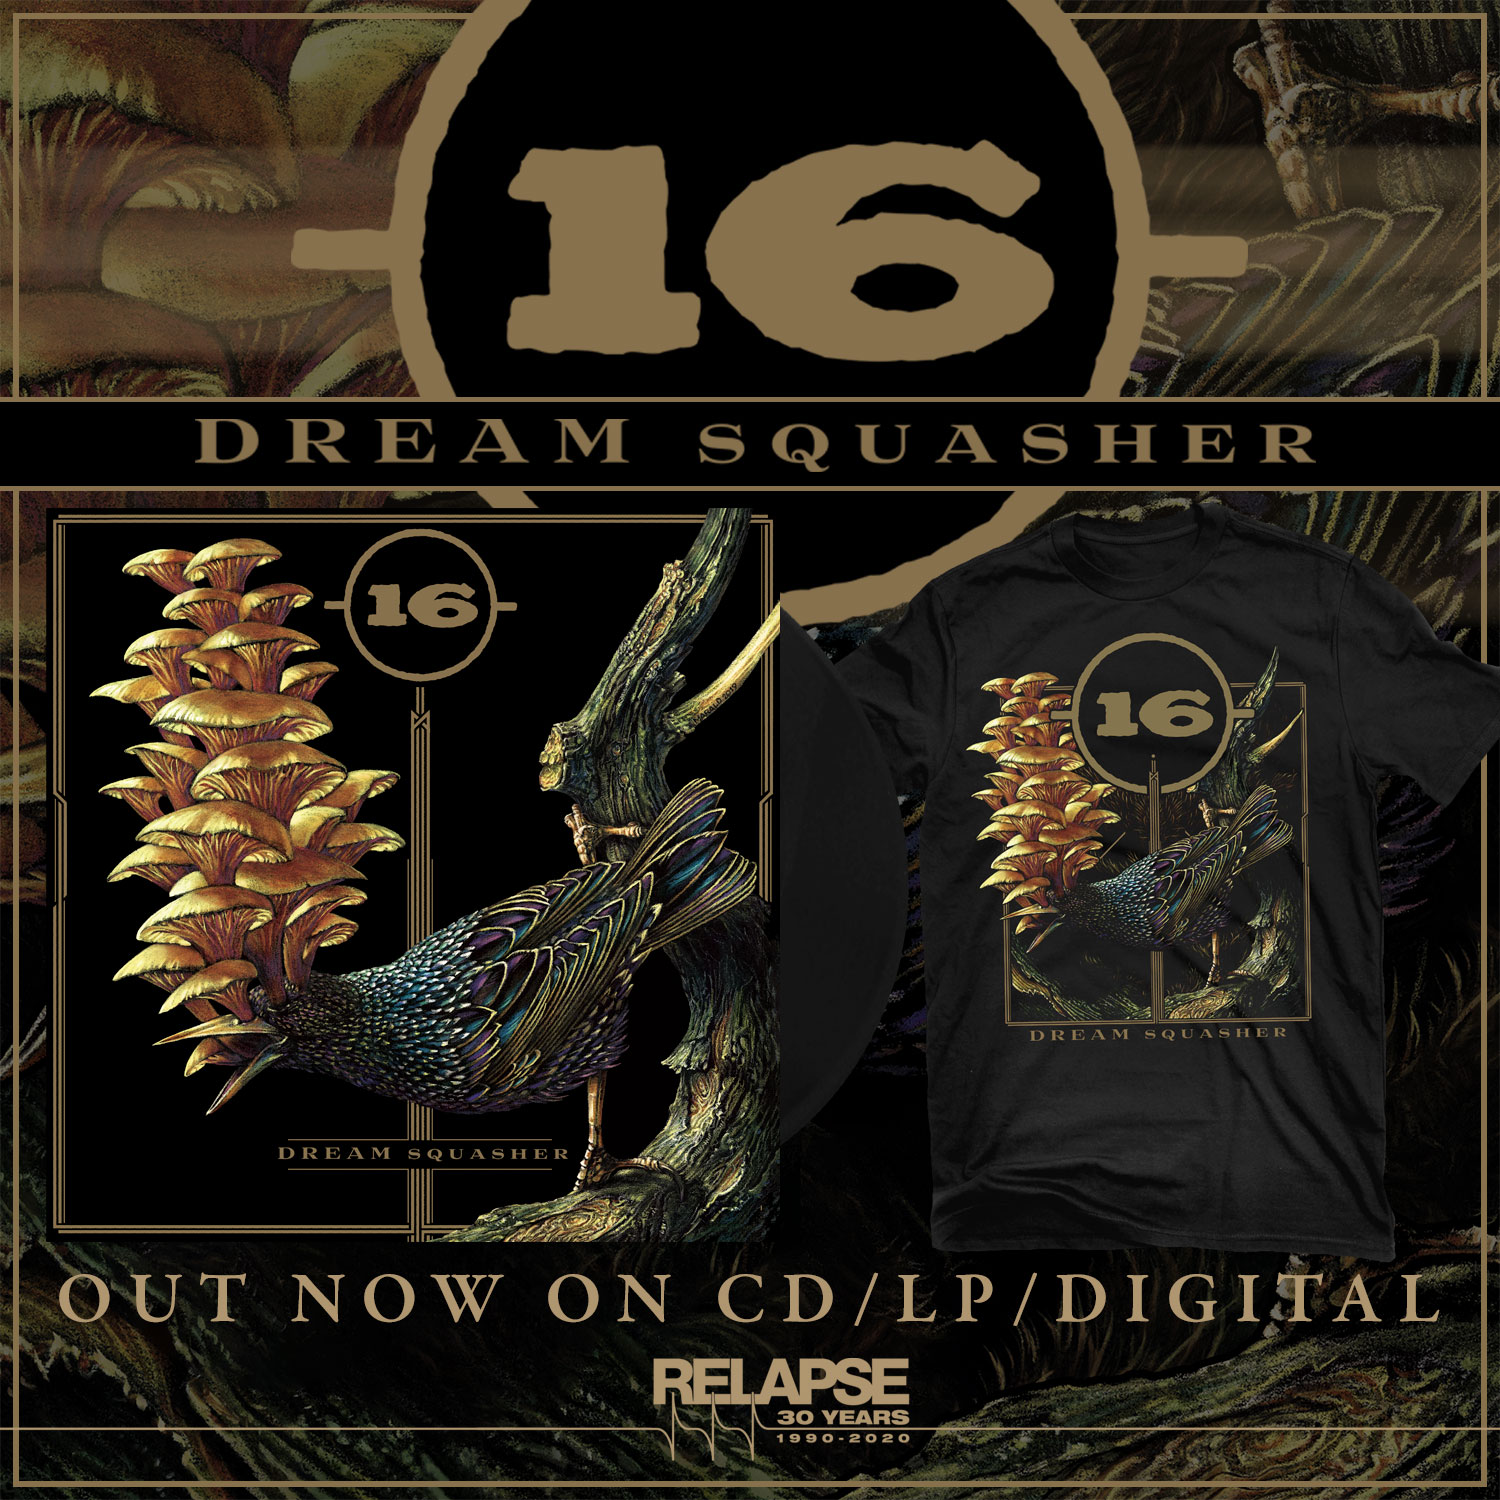 16-dream-squasher-doom-metal-sludge-metal-relapse